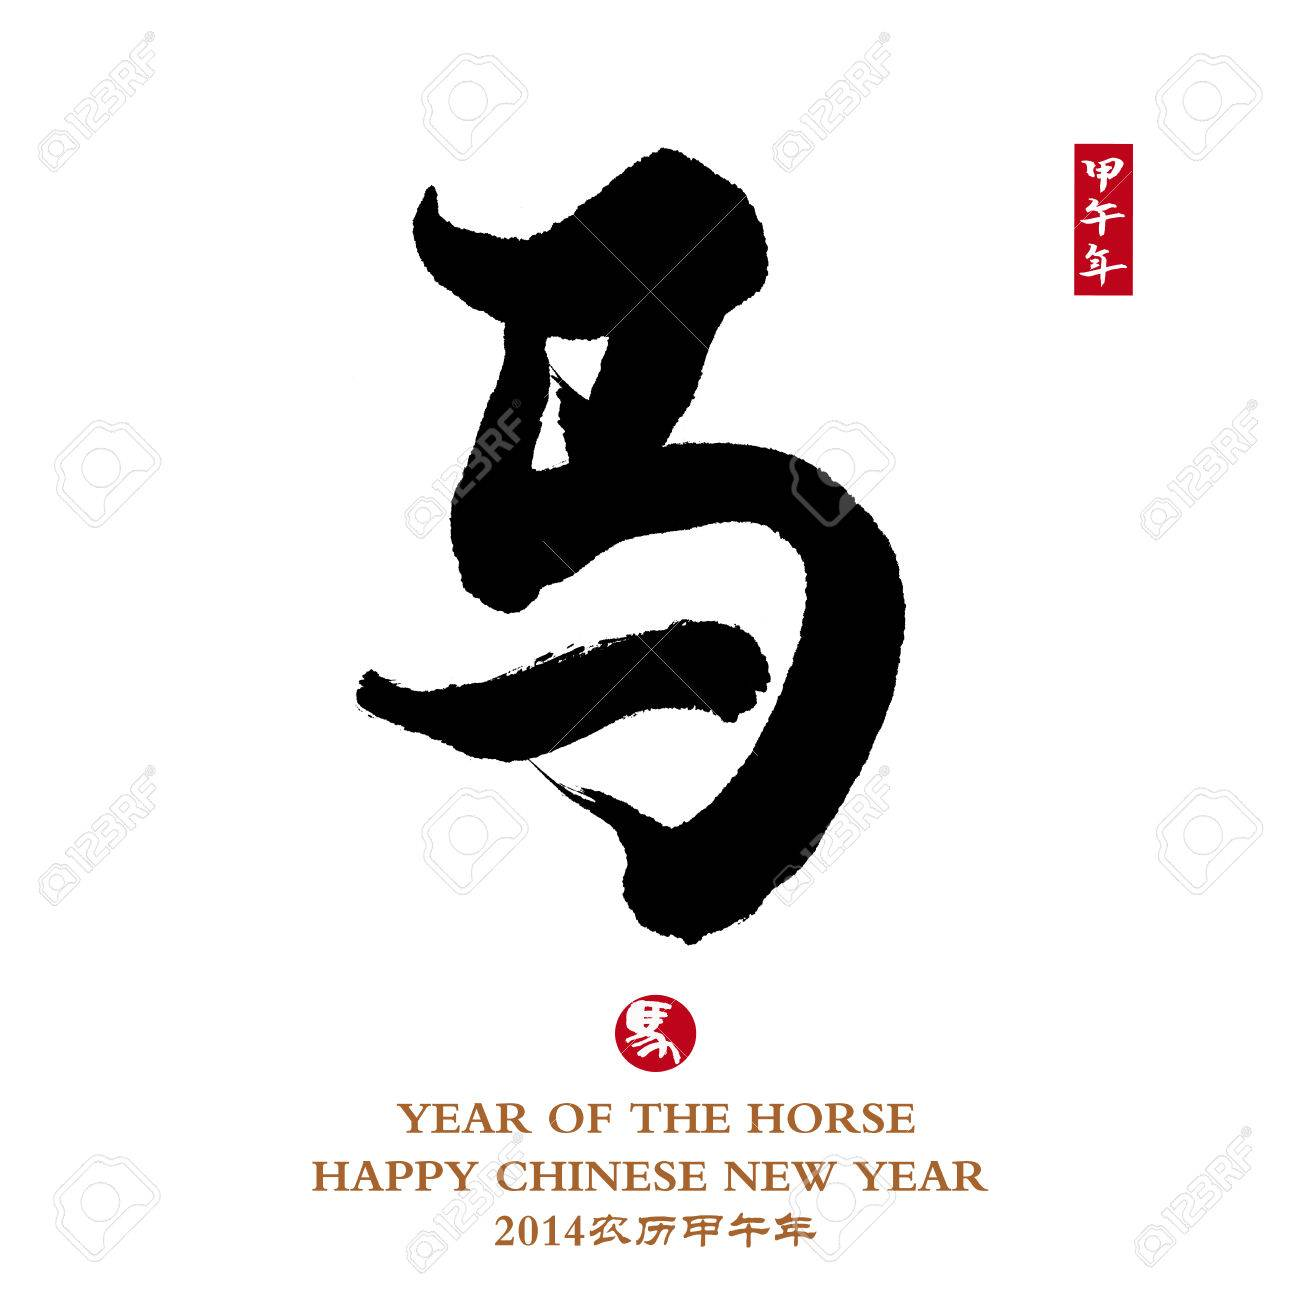 2014 Is Year Of The Horsechinese Calligraphy Word For Horse